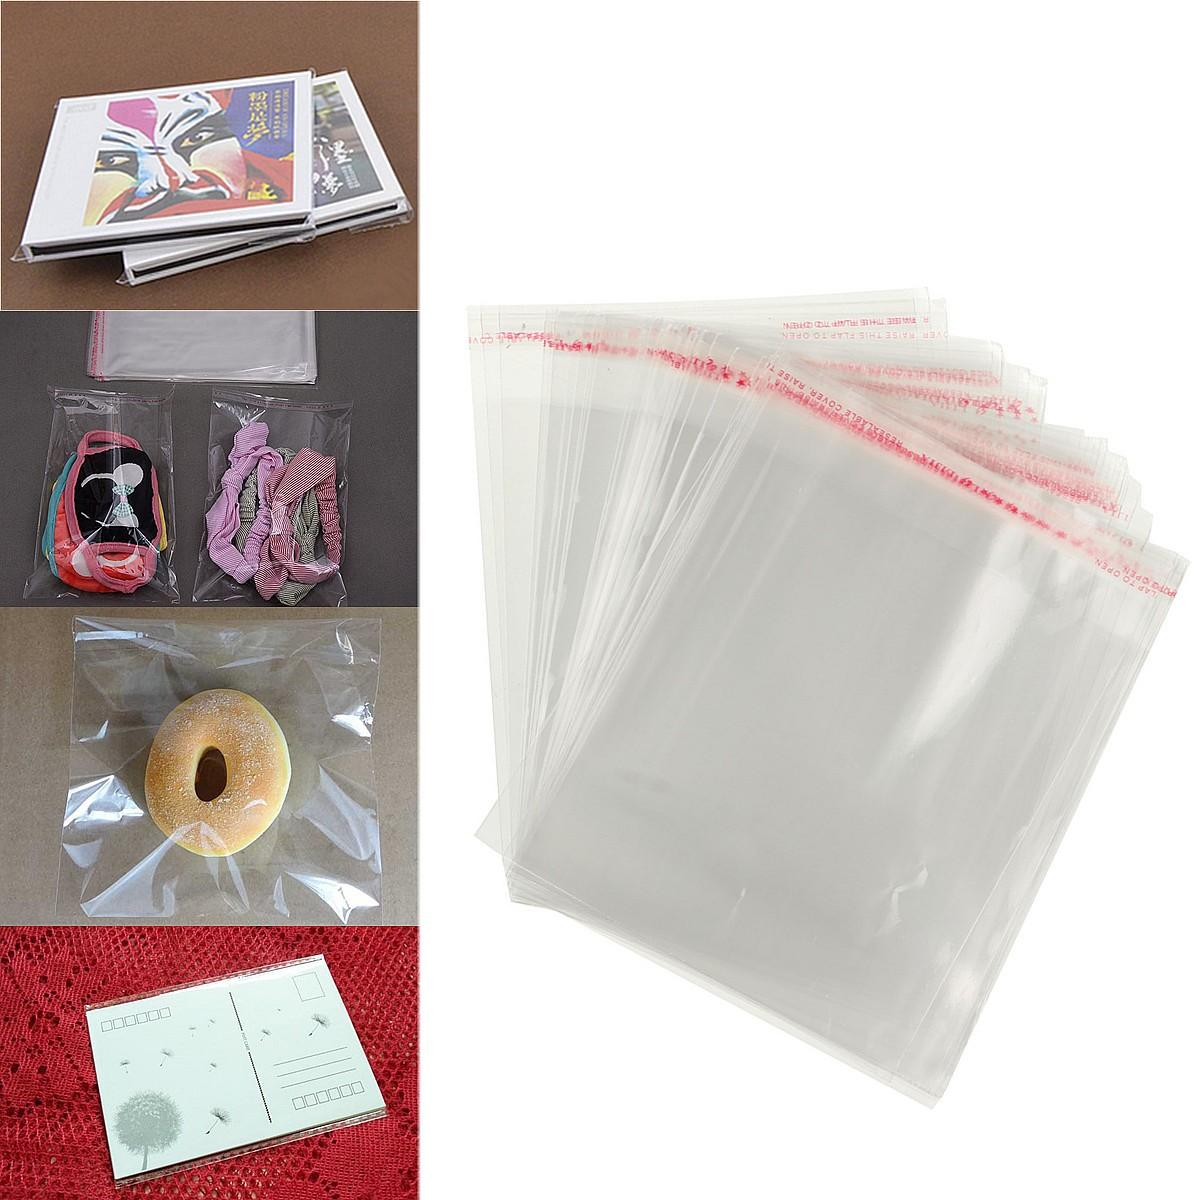 100pcs 12×16cm Clear Cellophane Display Bags Self Adhesive Seal Plastic For Card - 1